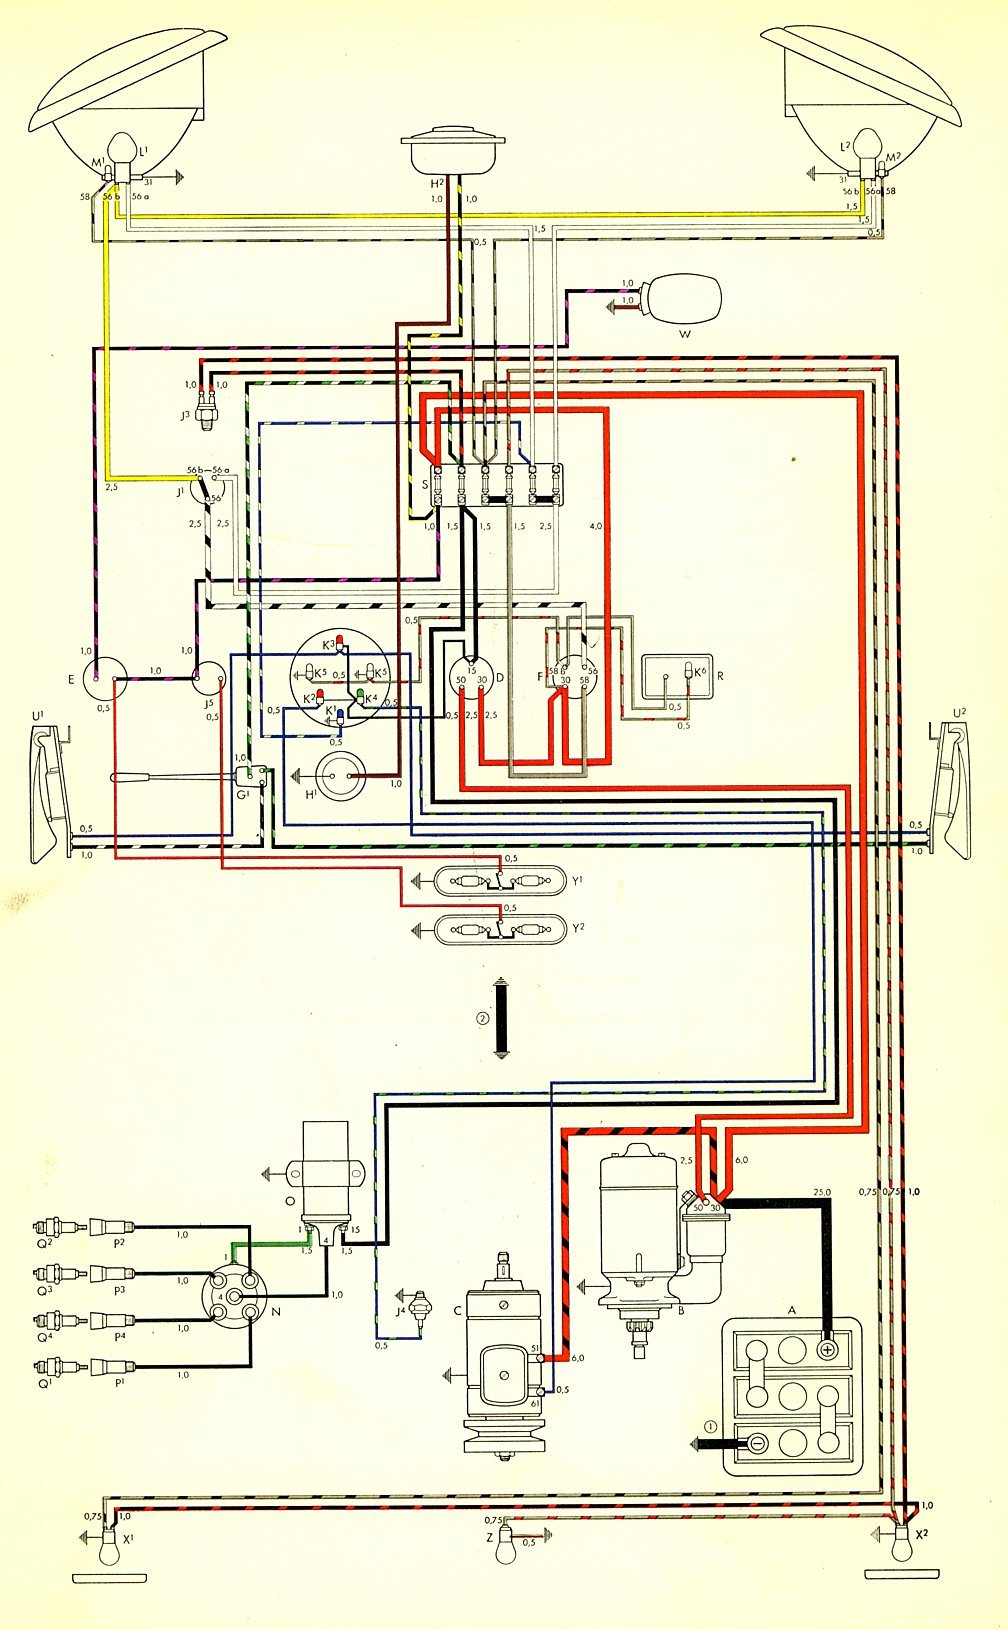 bus_59 wiring diagram for 1971 vw bus readingrat net 1978 vw bus fuse box diagram at suagrazia.org